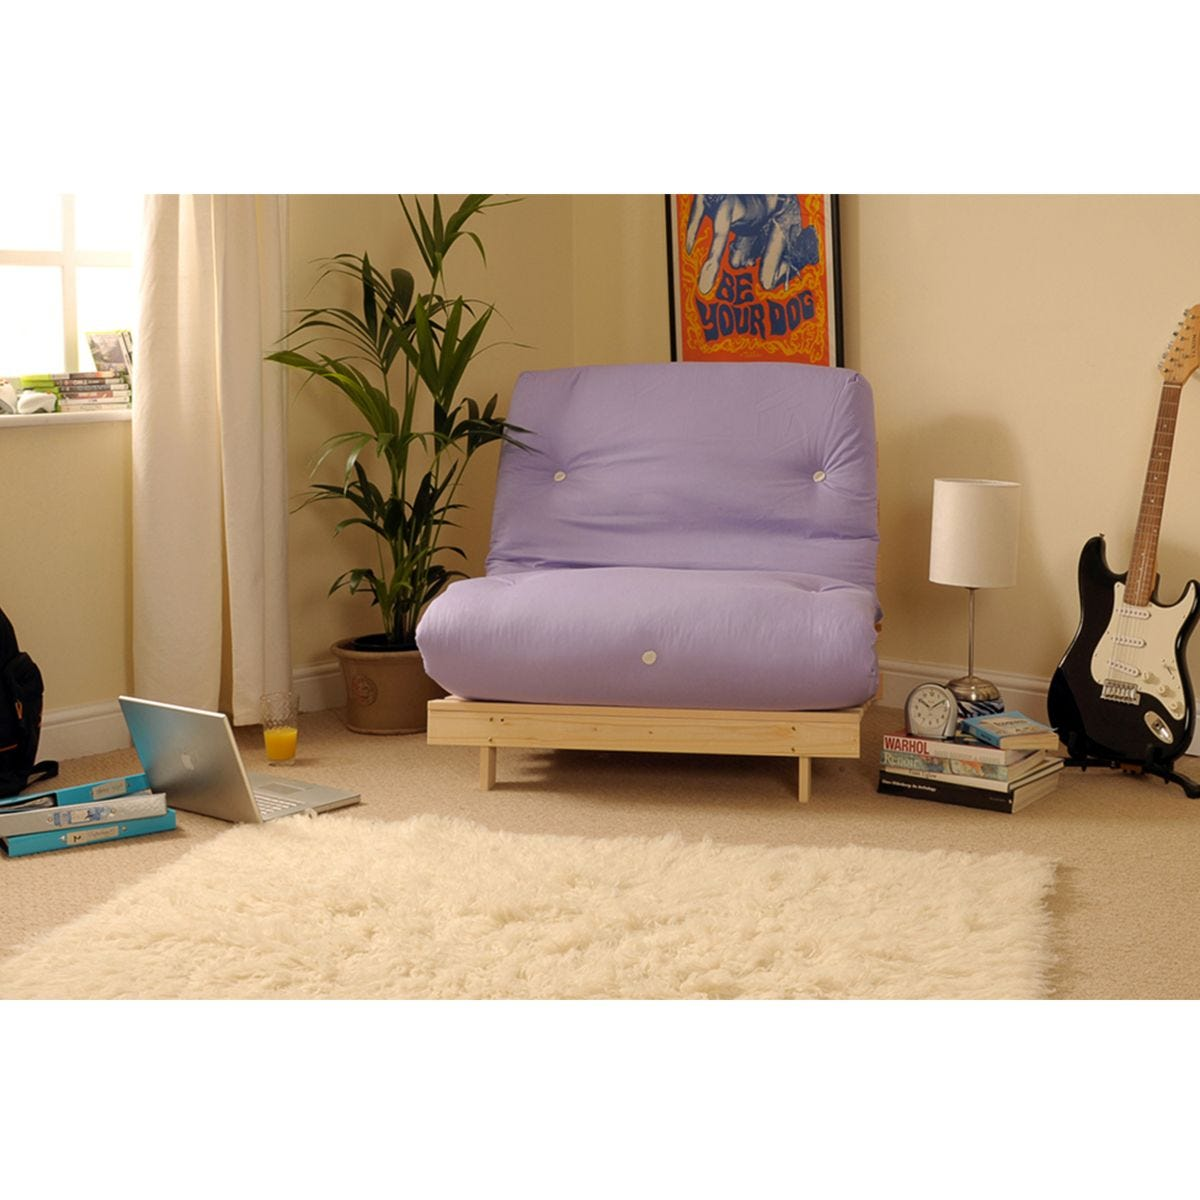 Albury Double Sofa Bed Set With Tufted Mattress - Lilac